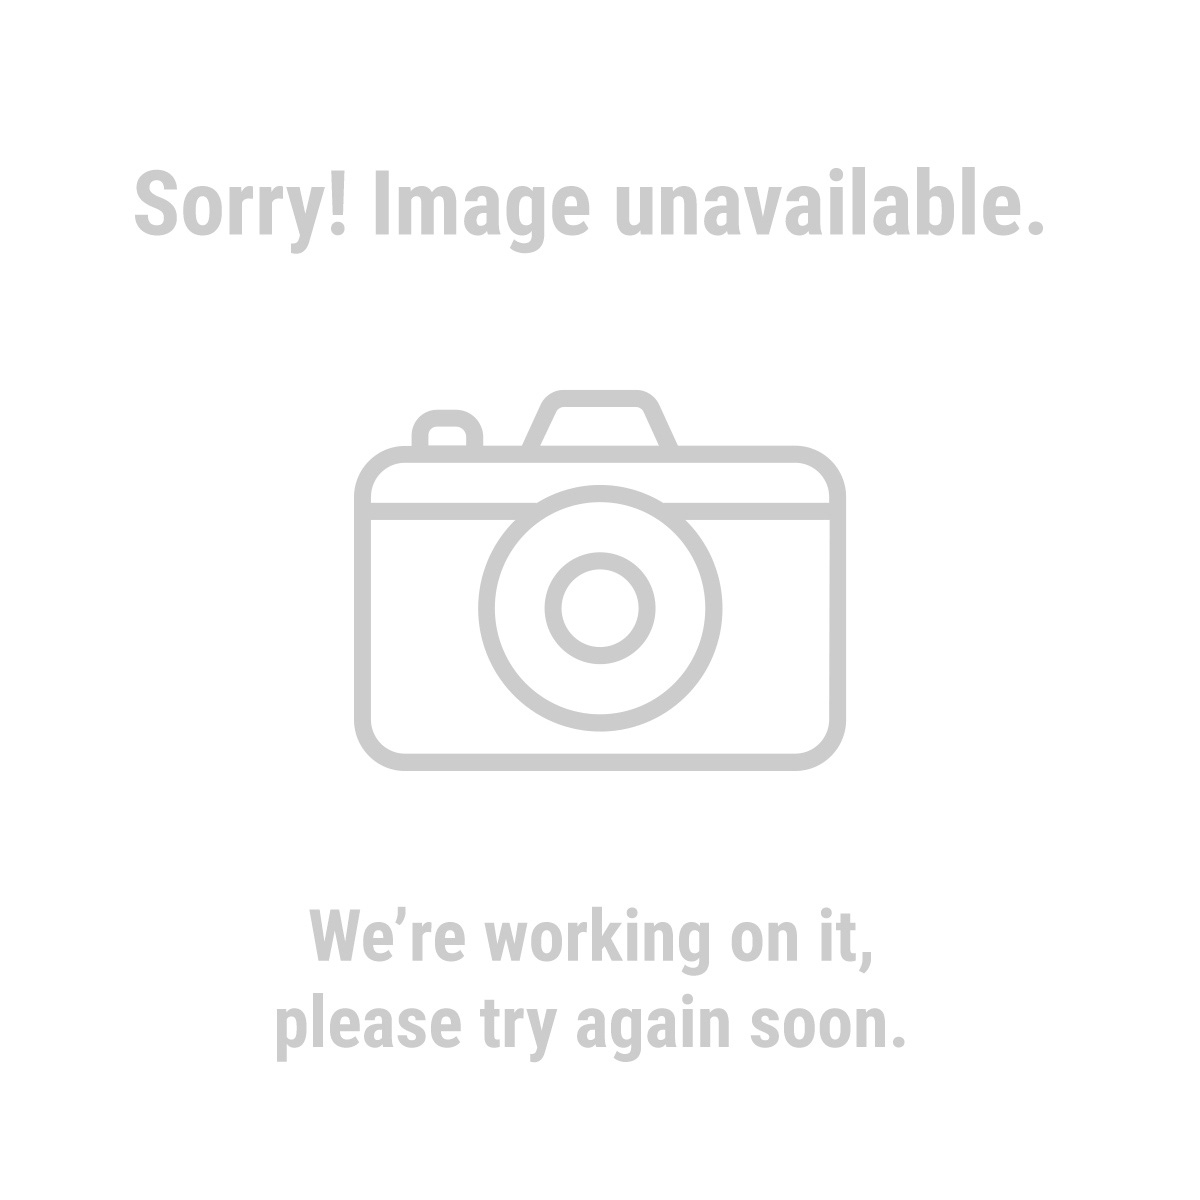 Pittsburgh 5494 3/4 in. Jumbo Heavy Duty Metric Socket Set 20 Pc